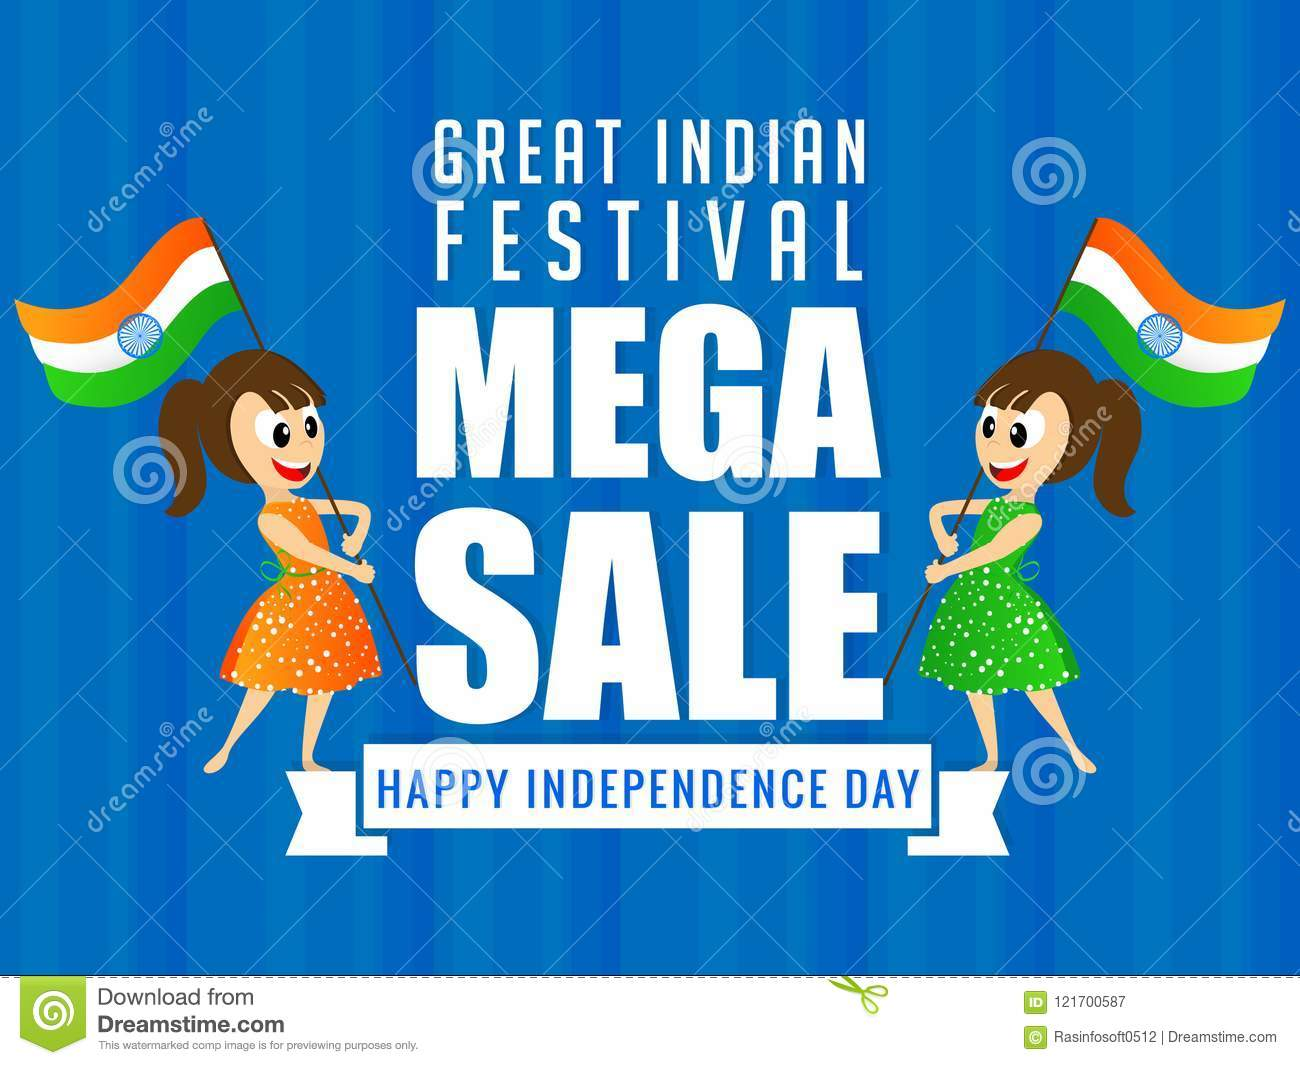 nice and beautiful sale flyer or poster for independence day of india or 15th of august with nice and creative design illustration special discount upto